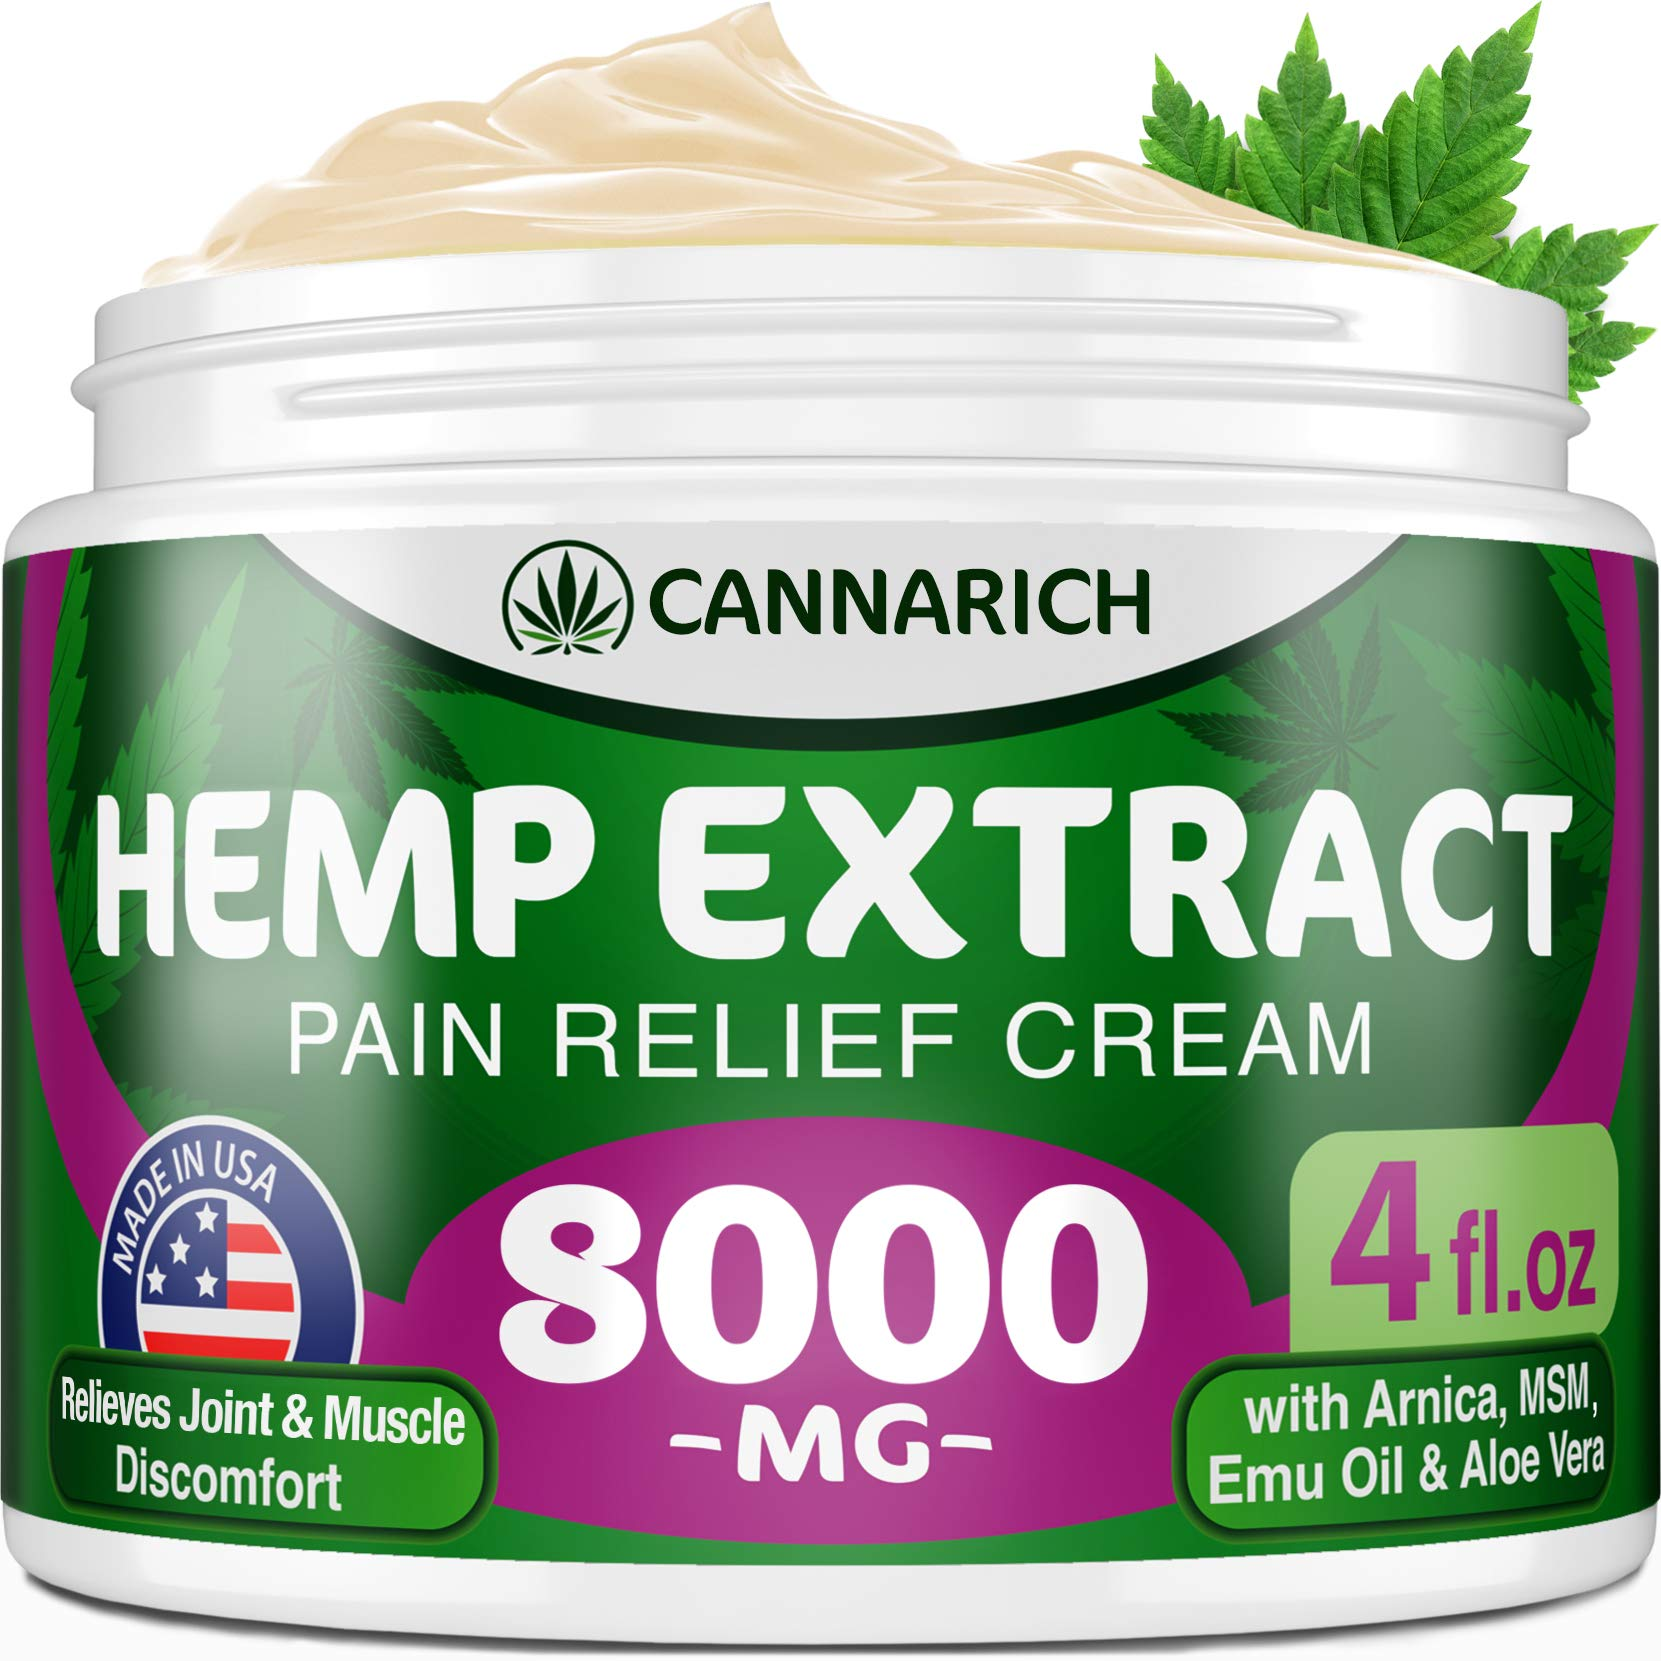 Pain Relief Hemp Cream - 8000MG Hemp Extract - Natural Formula with MSM, Aloe Vera, Emu Oil & Menthol - Made in USA - Perfect for Joint, Muscle, Sciatica & Back Pain - Rich in Omega 3-6-9 by Cannarich